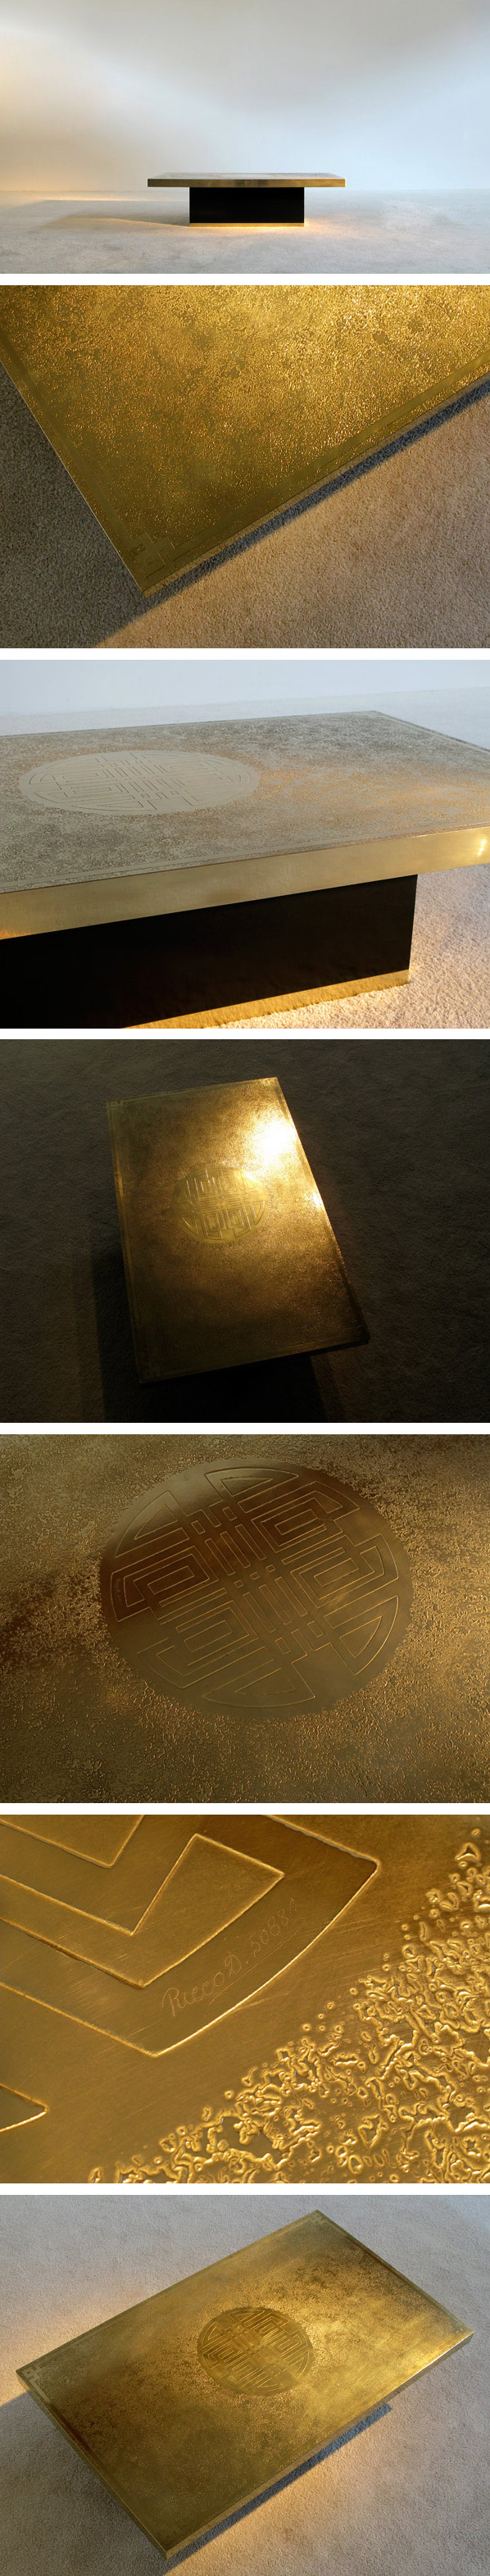 Signed Ricco D etched brass coffee table 1970 Large